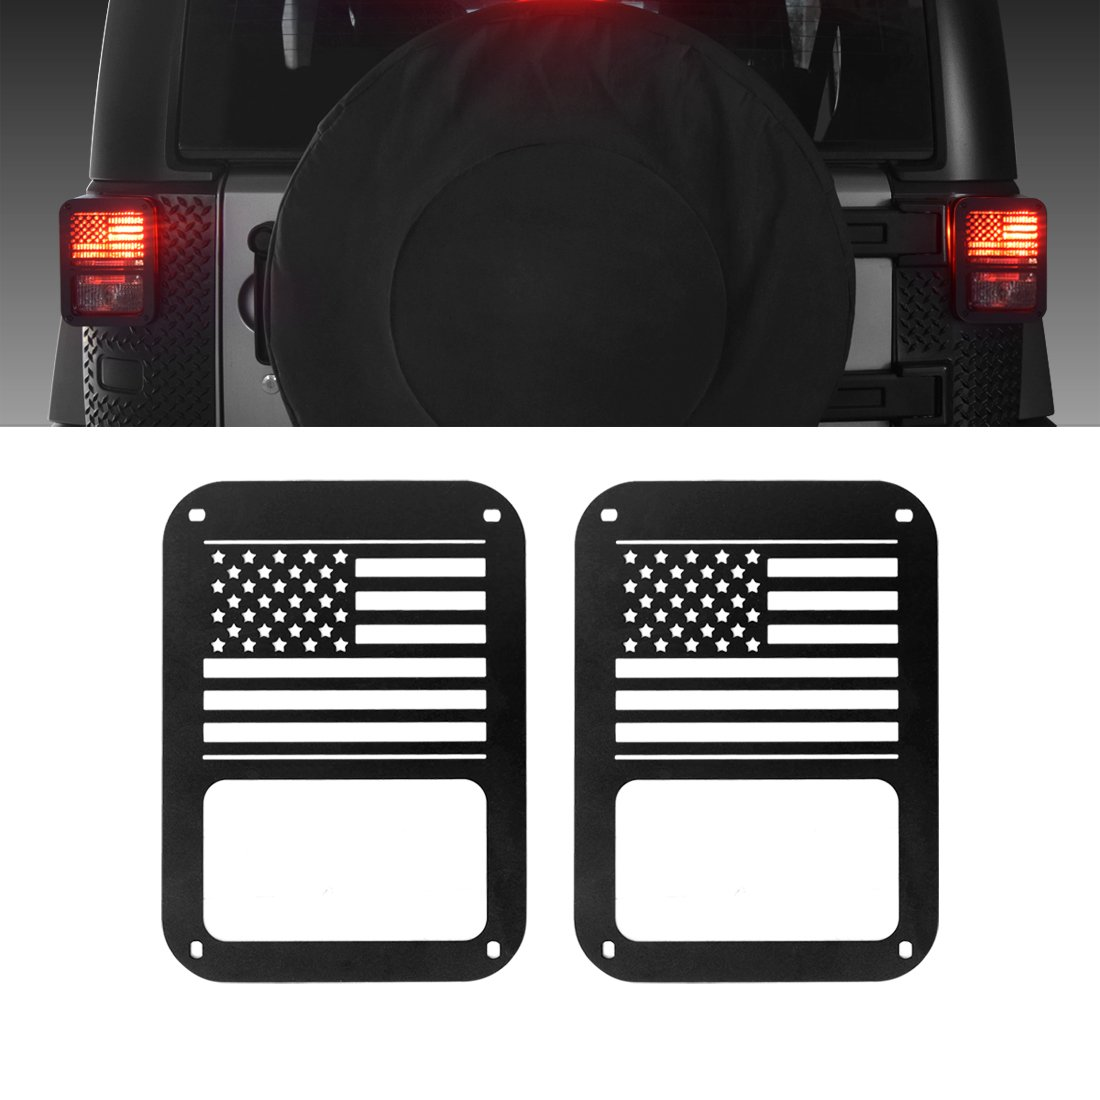 Extreme Off-Road Jeep Wrangler Taillights Covers Tail Light Guard Rear Light Cover Black Dog Paw Jeep Wrangler Accessories JK JKU & Unlimited Rubicon Sahara Sports, 2007-2018 - Matte Black(2 Pcs)